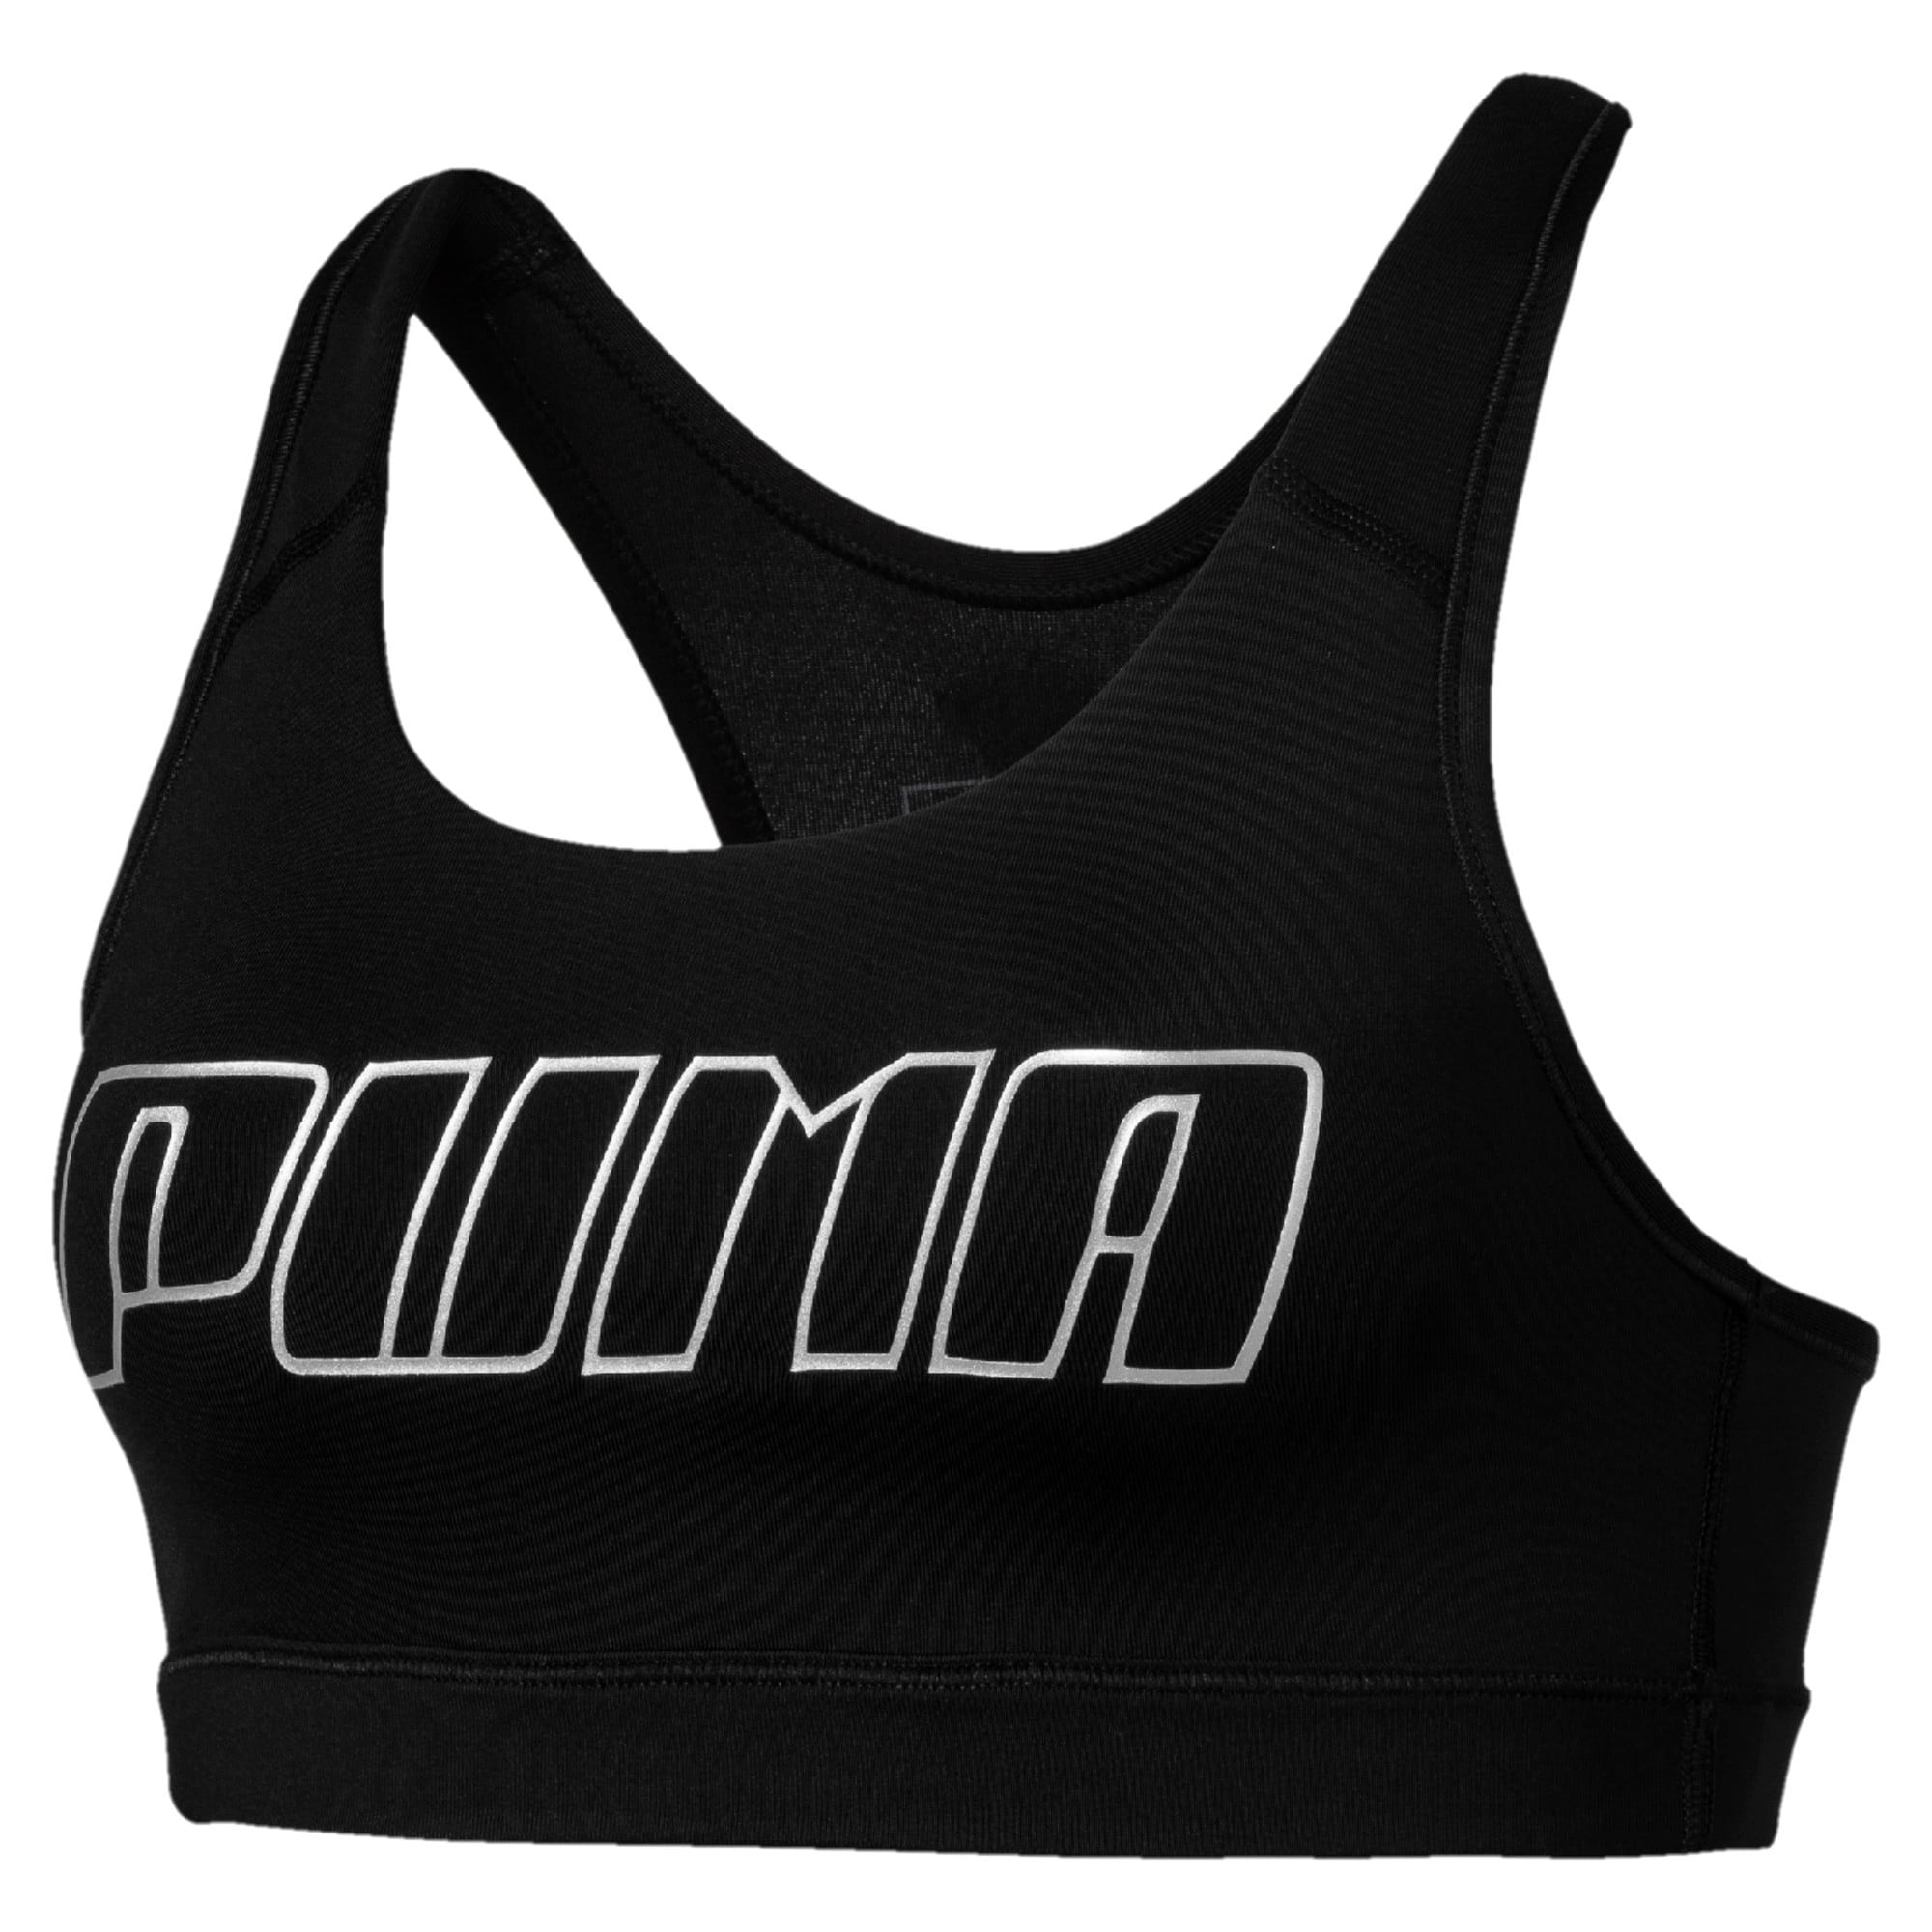 Thumbnail 3 of 4Keeps Women's Mid Impact Bra, Puma Black-Silver PUMA, medium